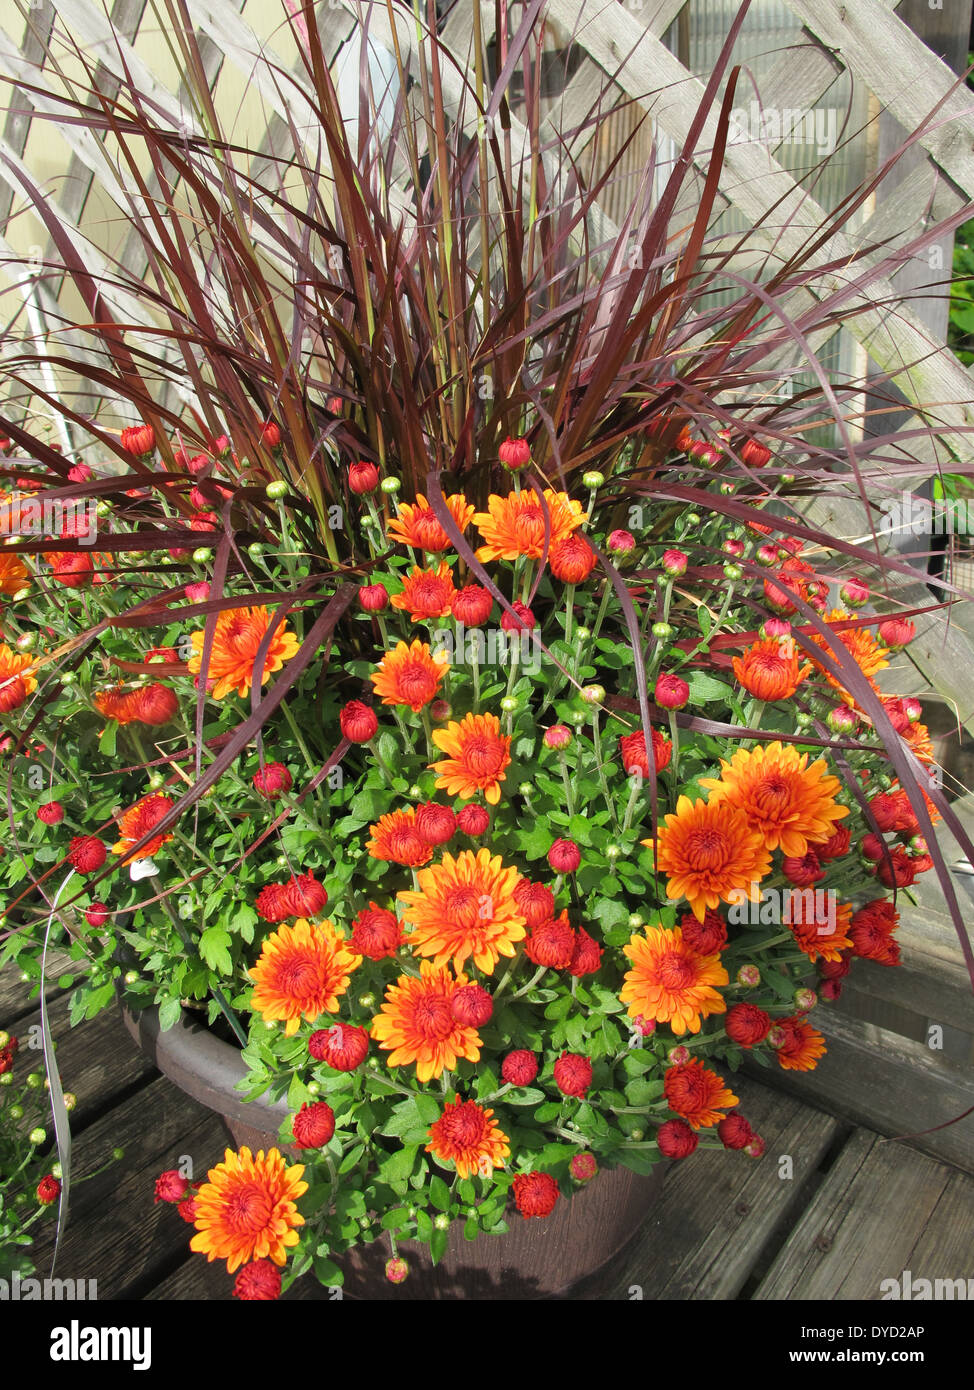 A beautiful arrangement of orange and red mums in a flower pot